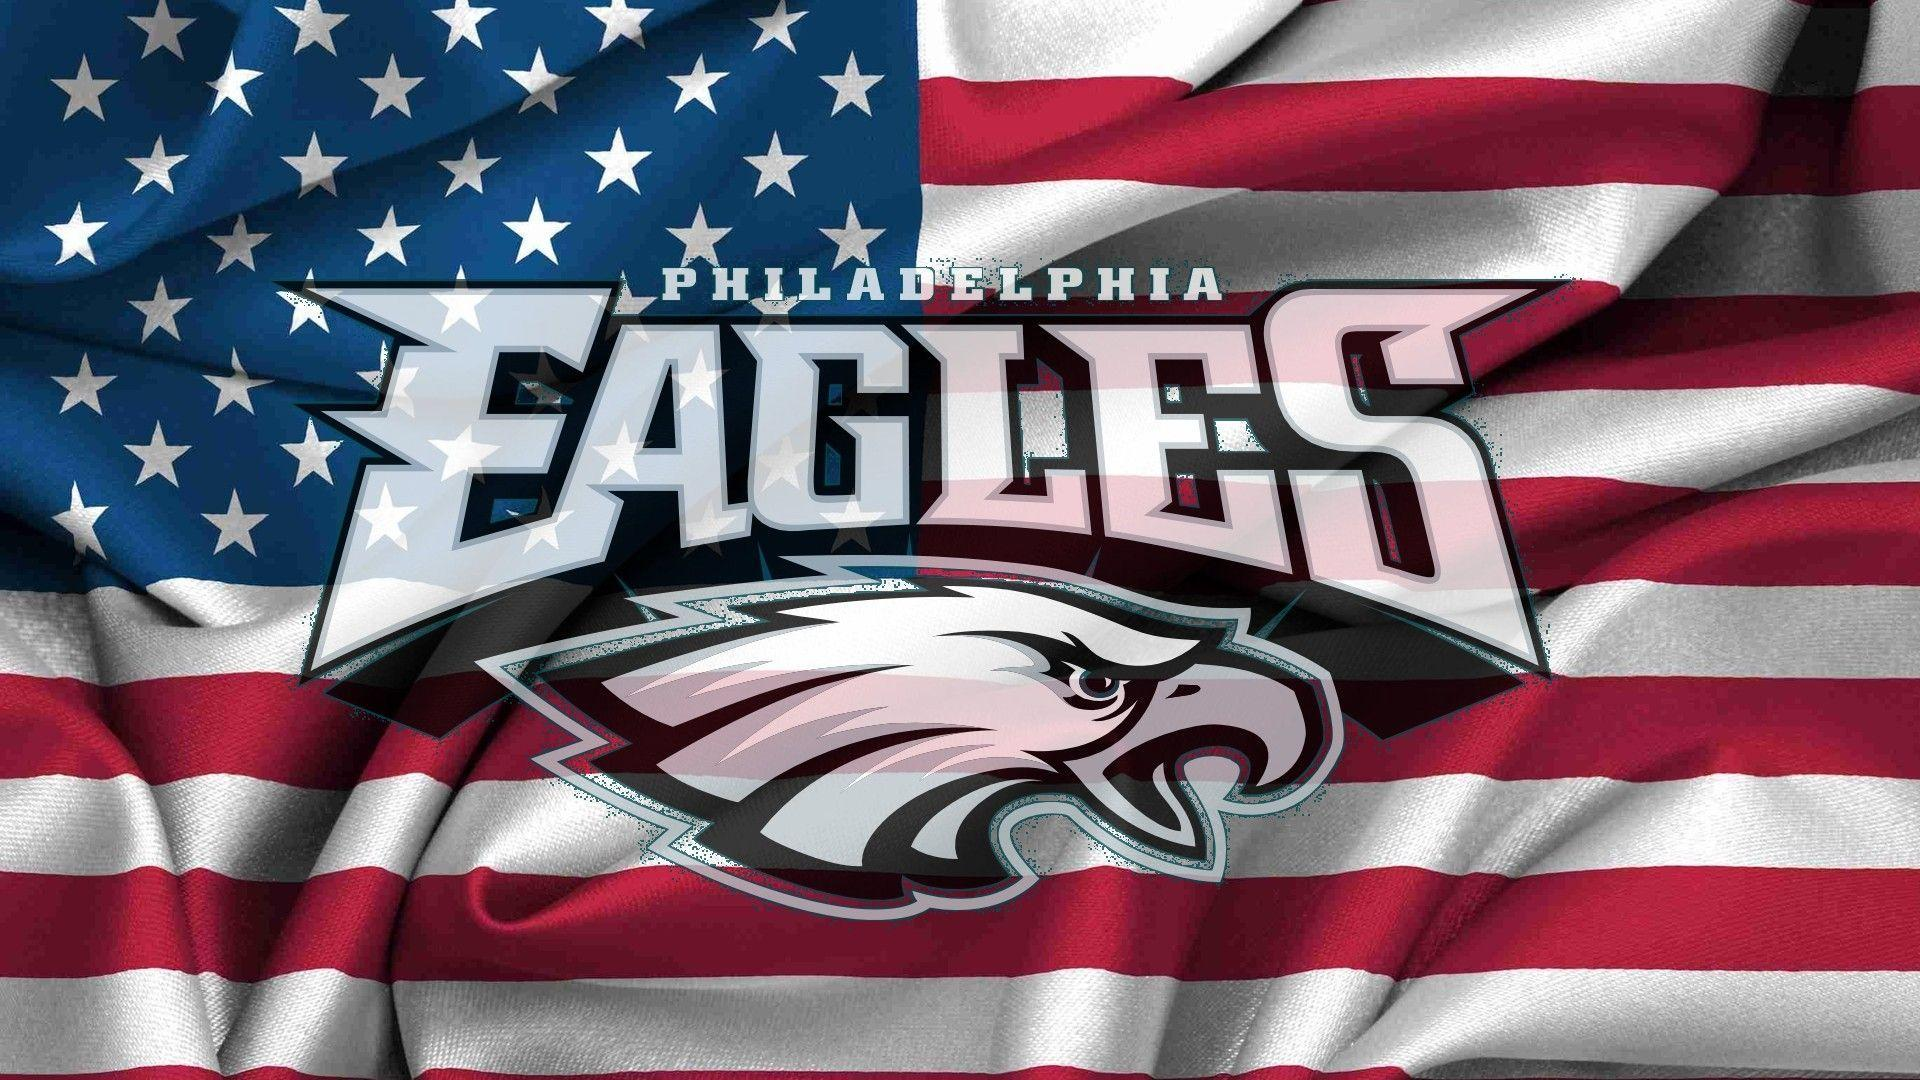 Philadelphia Eagles HD Pictures